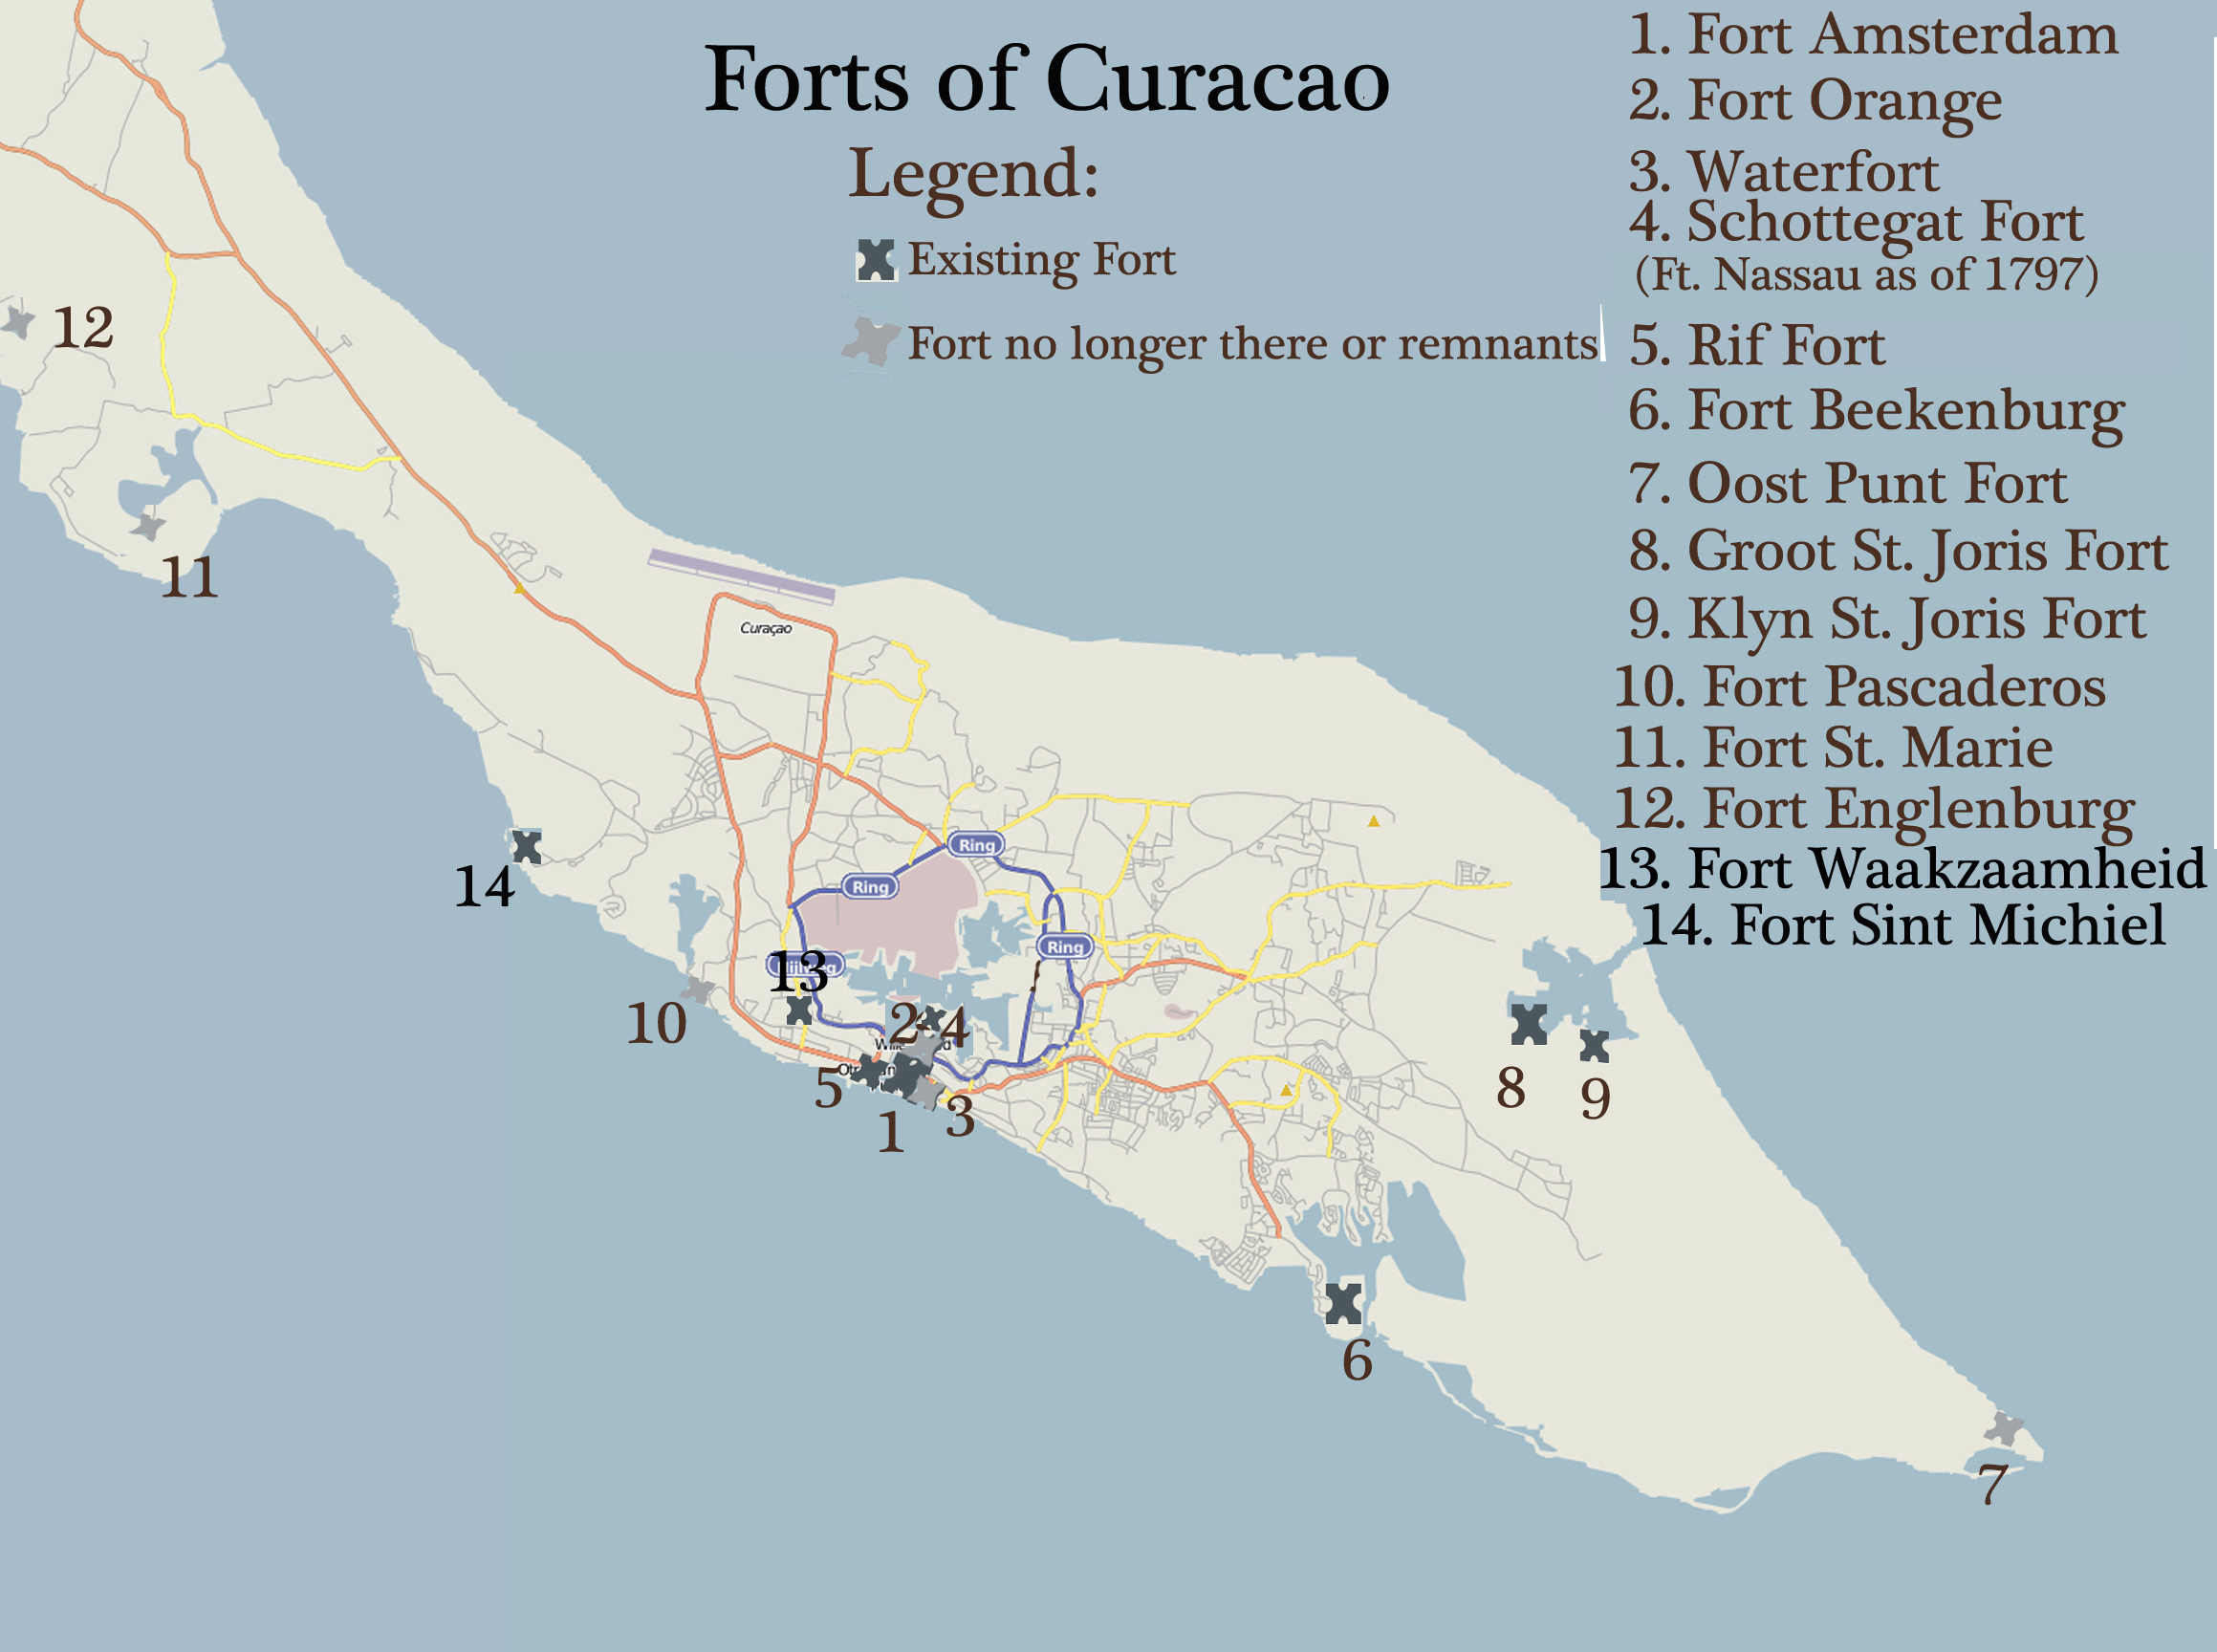 Shields Forts of Curacao